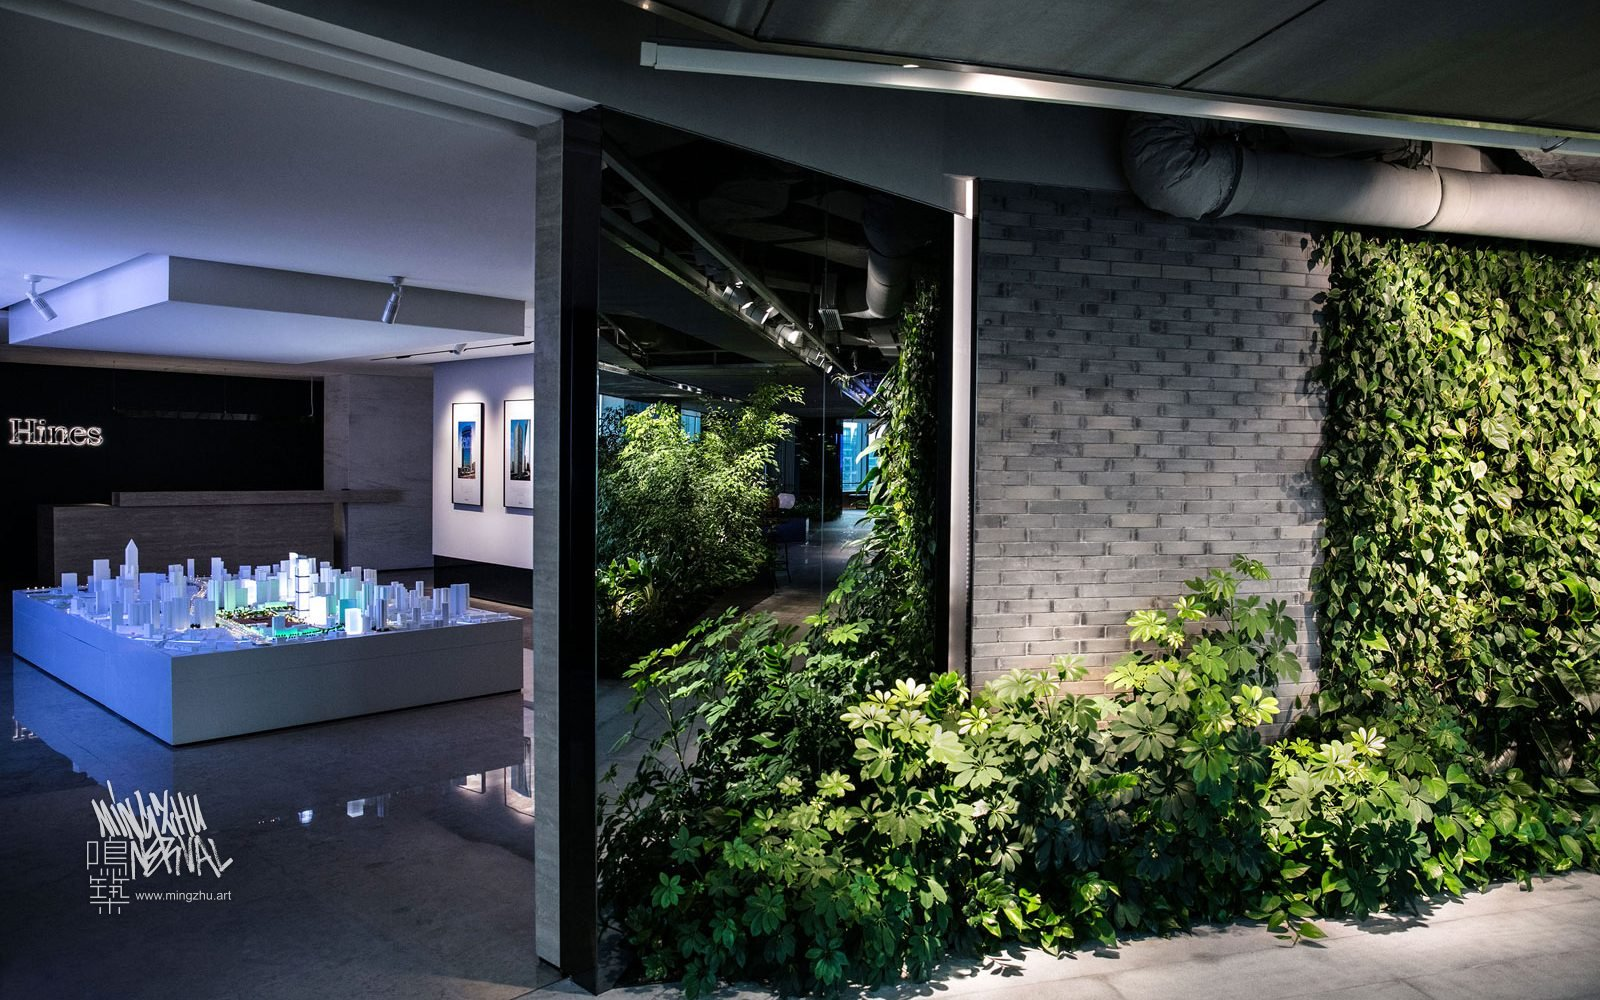 At Mingzhu Nerval, we thrive at creating the most beautiful vertical gardens in the world. For Hines, we created a pleasant living wall design – Shanghai, 2016.